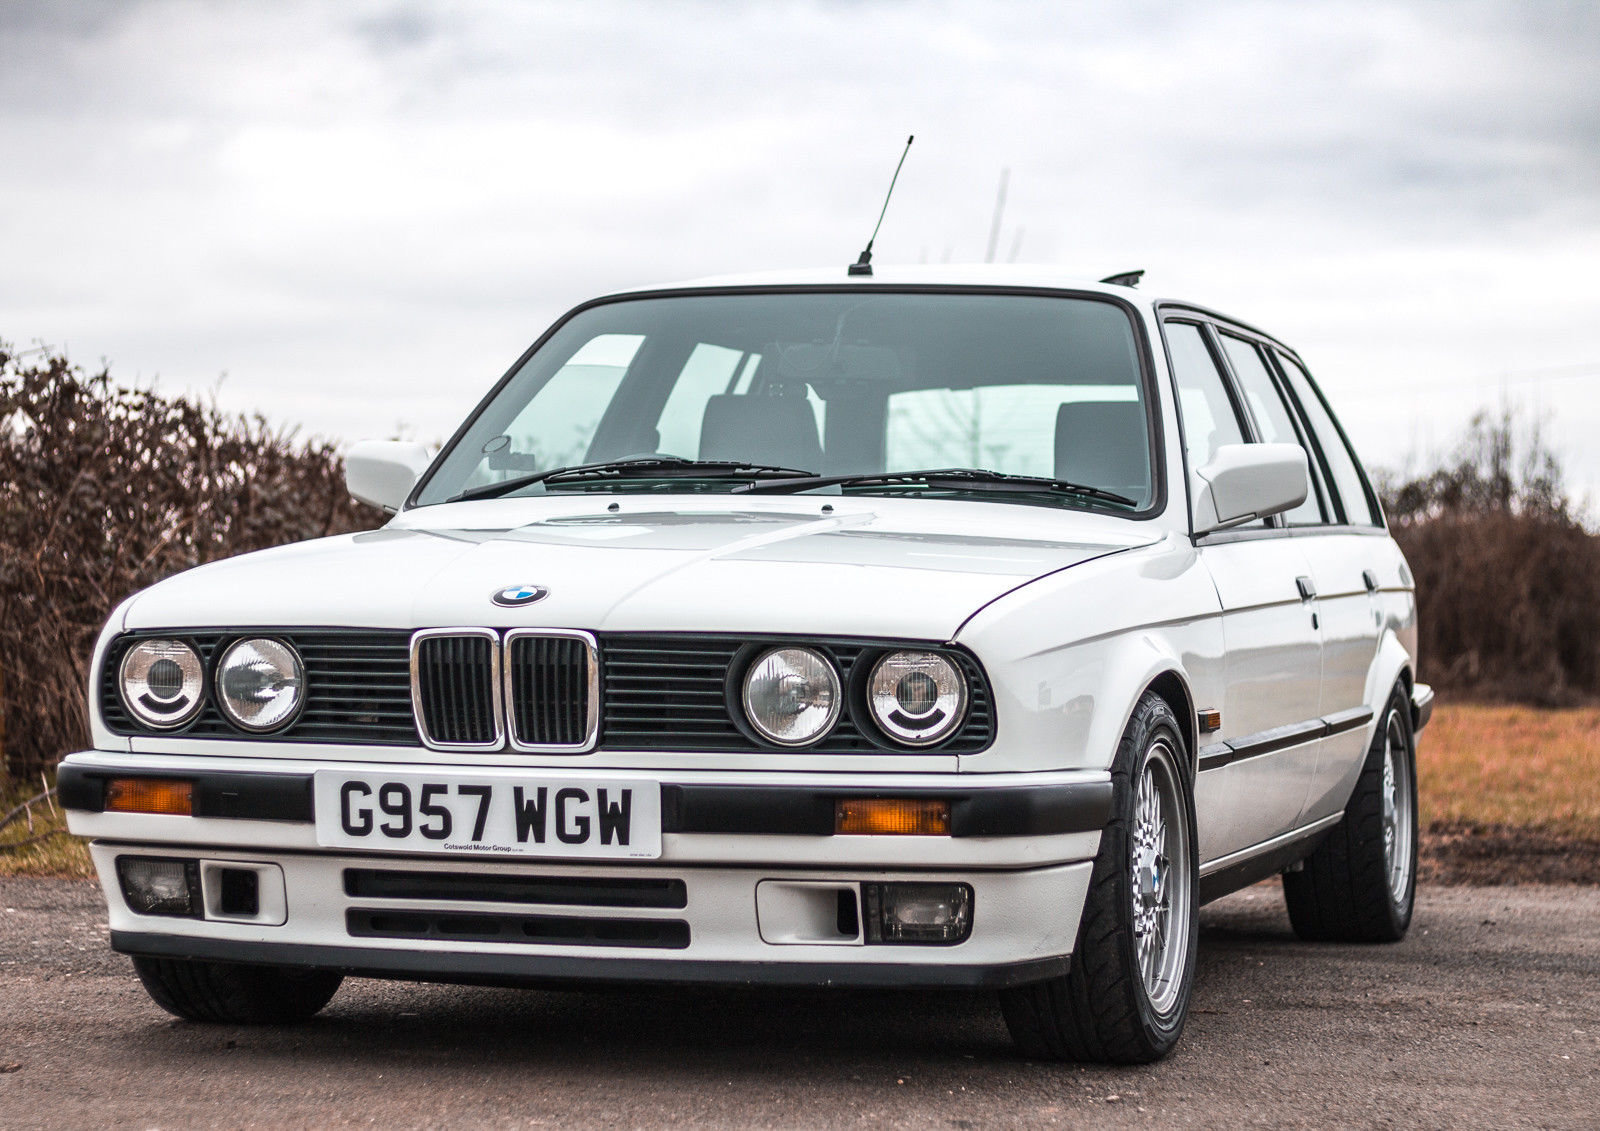 1989 520BHP BMW E30 Touring Supercharged V8 'Sleeper' For Sale (picture 2 of 6)